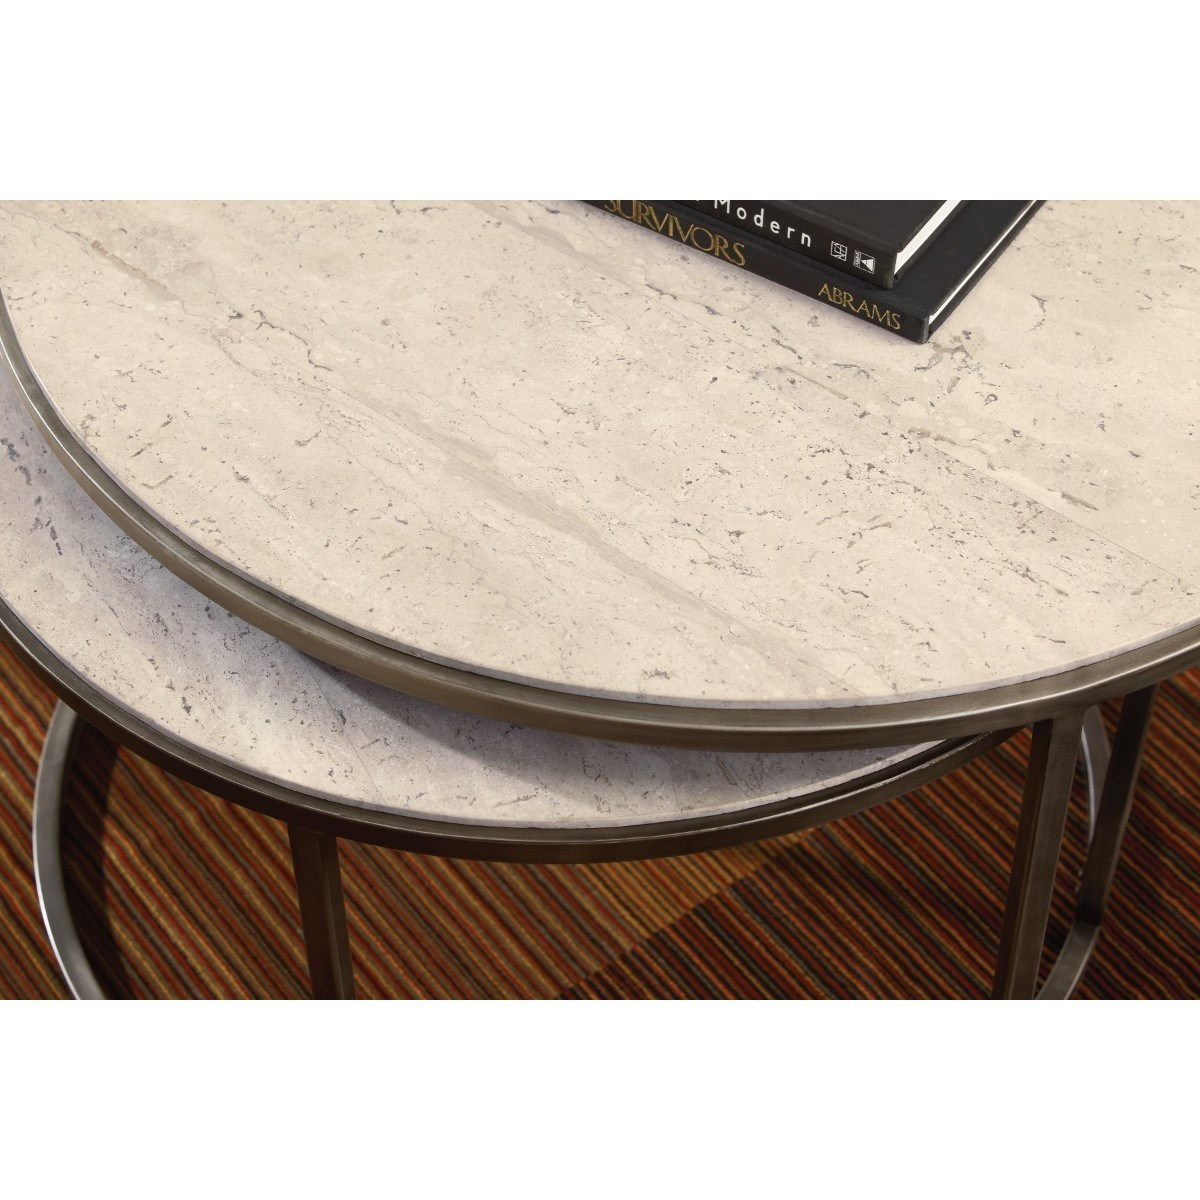 Round cocktail table with nesting tables by hammary wolf for Coffee tables york pa